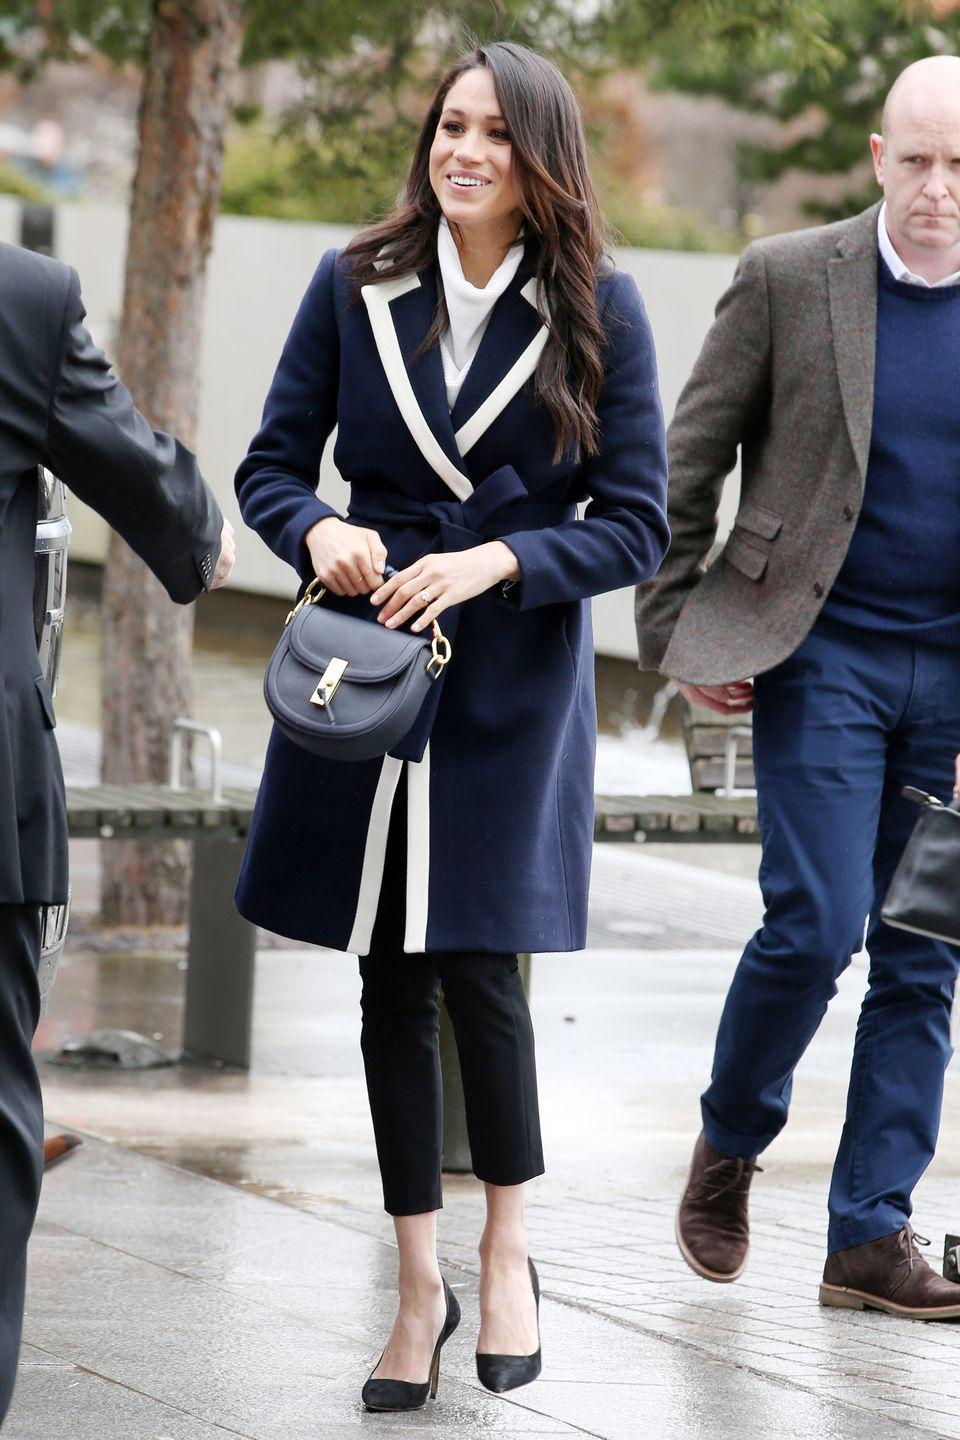 """<p>For her trip to Birmingham on International Women's Day, Meghan wore a now sold-out <a href=""""https://www.net-a-porter.com/gb/en/product/975199?cm_mmc=LinkshareUK-_-TnL5HPStwNw-_-LinkshareUS-_-J84DHJLQkR4-_-Custom-_-LinkBuilder&siteID=J84DHJLQkR4-kqHF2aEzqZnHsdu6c4jWew&siteID=TnL5HPStwNw-tAkWsoNqKZ4aOERaLrj7bg&ShopStyle+%28POPSUGAR%29=ShopStyle+%28POPSUGAR%29&Skimlinks.com=Skimlinks.com"""" rel=""""nofollow noopener"""" target=""""_blank"""" data-ylk=""""slk:two-tone J Crew coat"""" class=""""link rapid-noclick-resp"""">two-tone J Crew coat</a> (similar available <a href=""""https://www.beulahlondon.com/product/chiara-navy-coat/"""" rel=""""nofollow noopener"""" target=""""_blank"""" data-ylk=""""slk:here"""" class=""""link rapid-noclick-resp"""">here</a>) over her white AllSaints Ridley jumper (similar available <a href=""""https://www.allsaints.com/women/knitwear/allsaints-jones-jumper/?colour=4068&category=26"""" rel=""""nofollow noopener"""" target=""""_blank"""" data-ylk=""""slk:here"""" class=""""link rapid-noclick-resp"""">here</a>) - a subtle nod to the colour the suffragettes wore in the early 20th century as they fought for the right to vote, perhaps?</p>"""